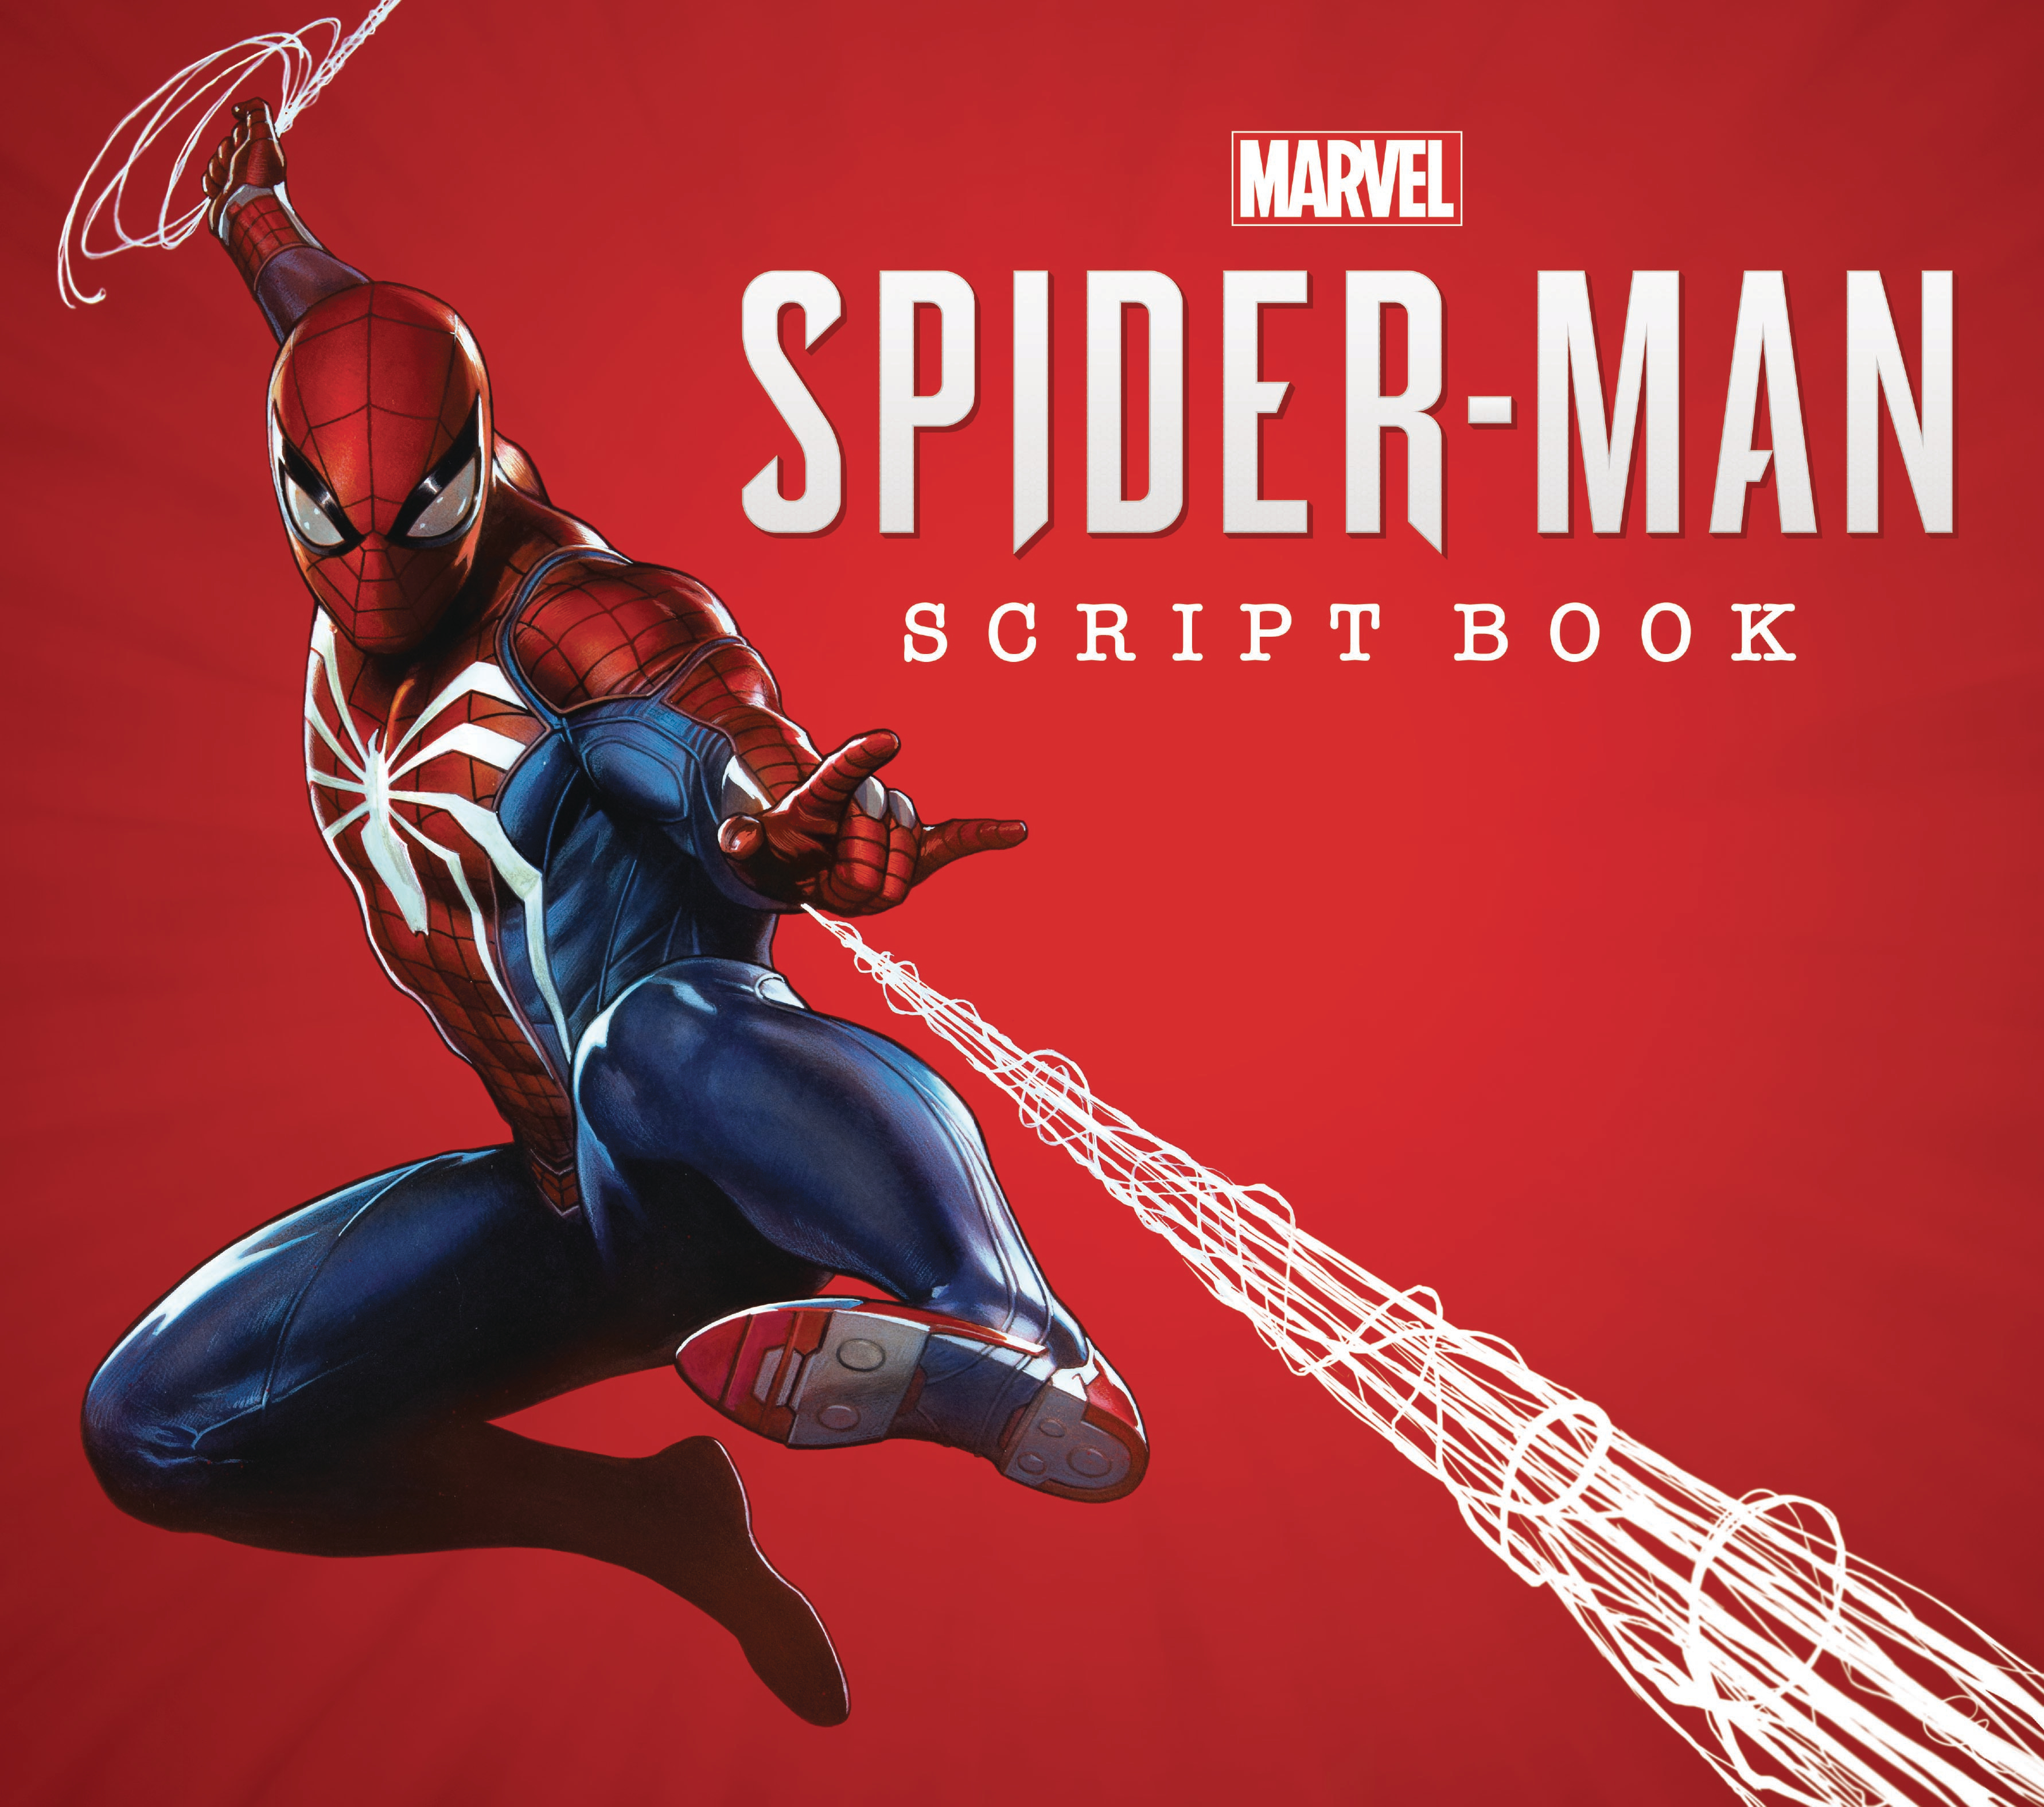 MARVELS SPIDER-MAN SCRIPT BOOK HC